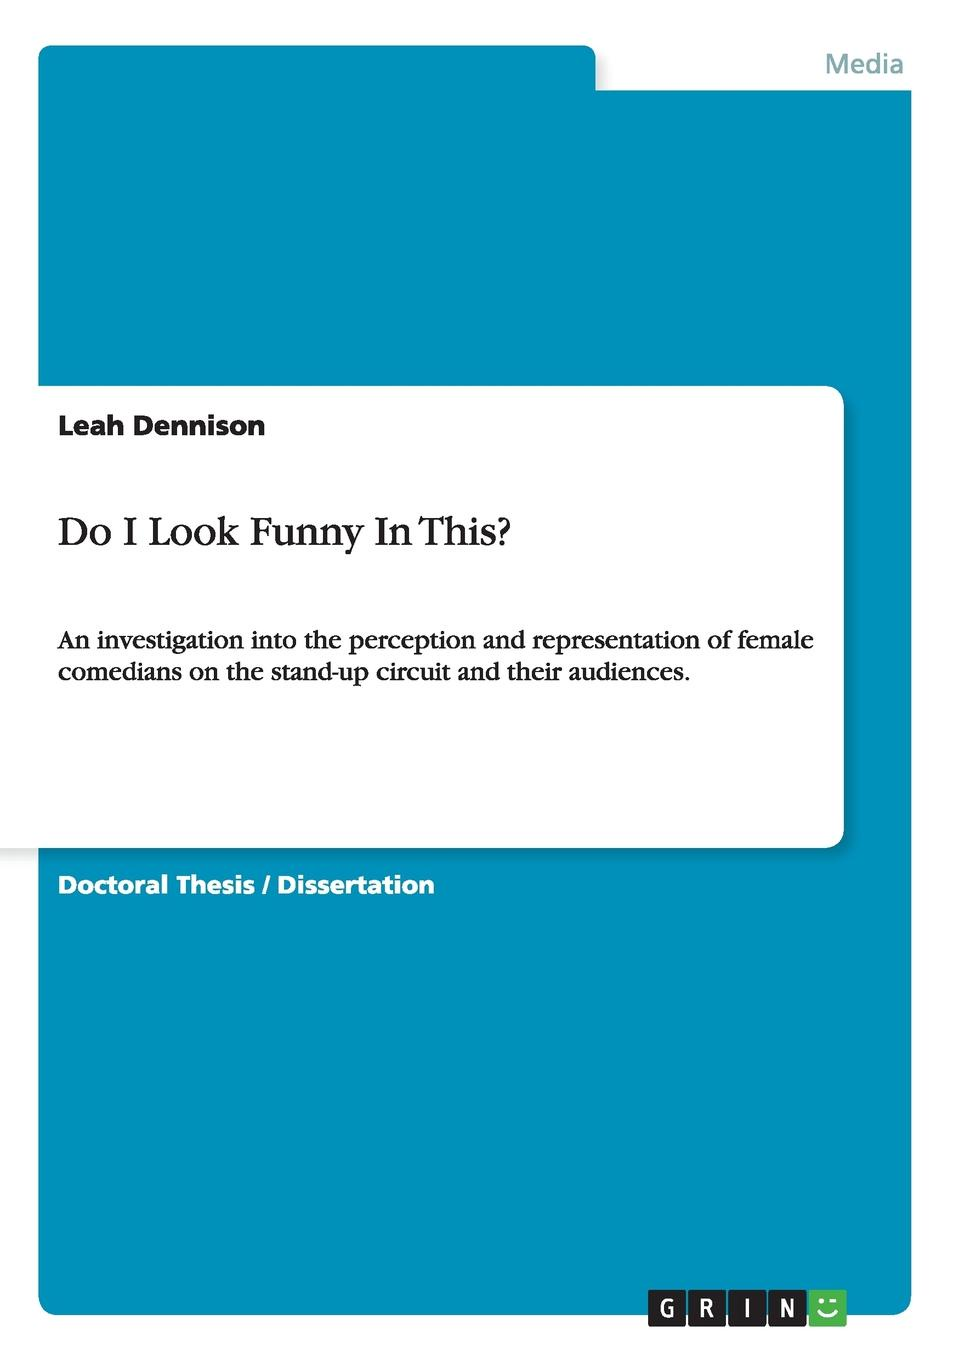 Leah Dennison Do I Look Funny In This. leah dennison do i look funny in this an investigation into the perception and representation of female comedians on the stand up circuit and their audiences